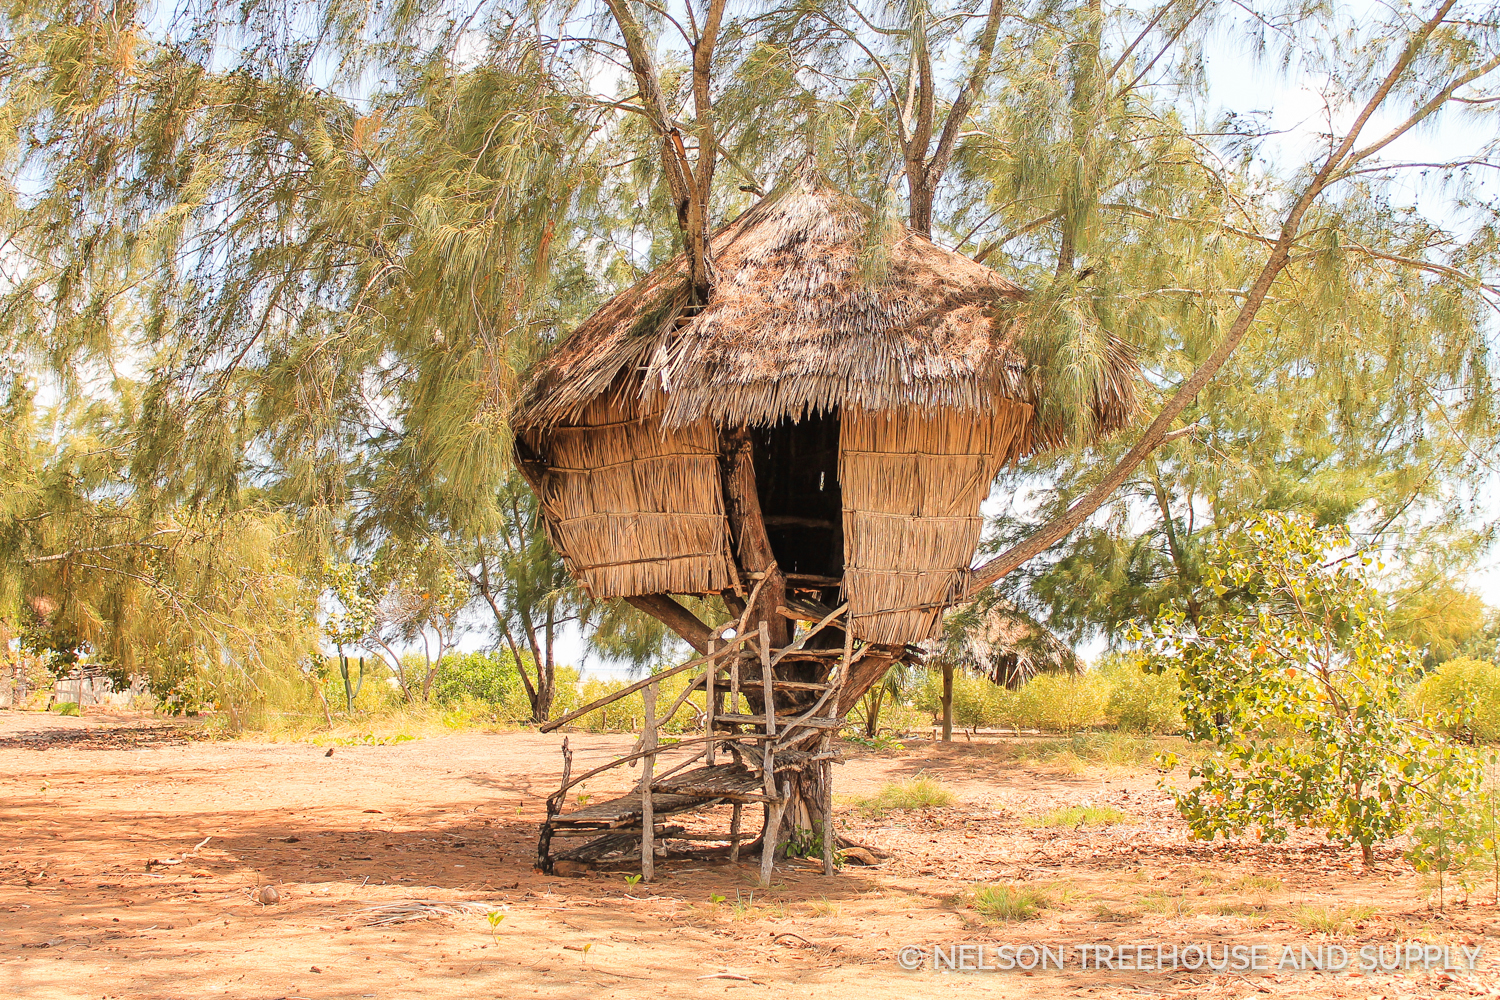 The One Love Island Treehouse in Kenya. Photo by Dylan Rauch.